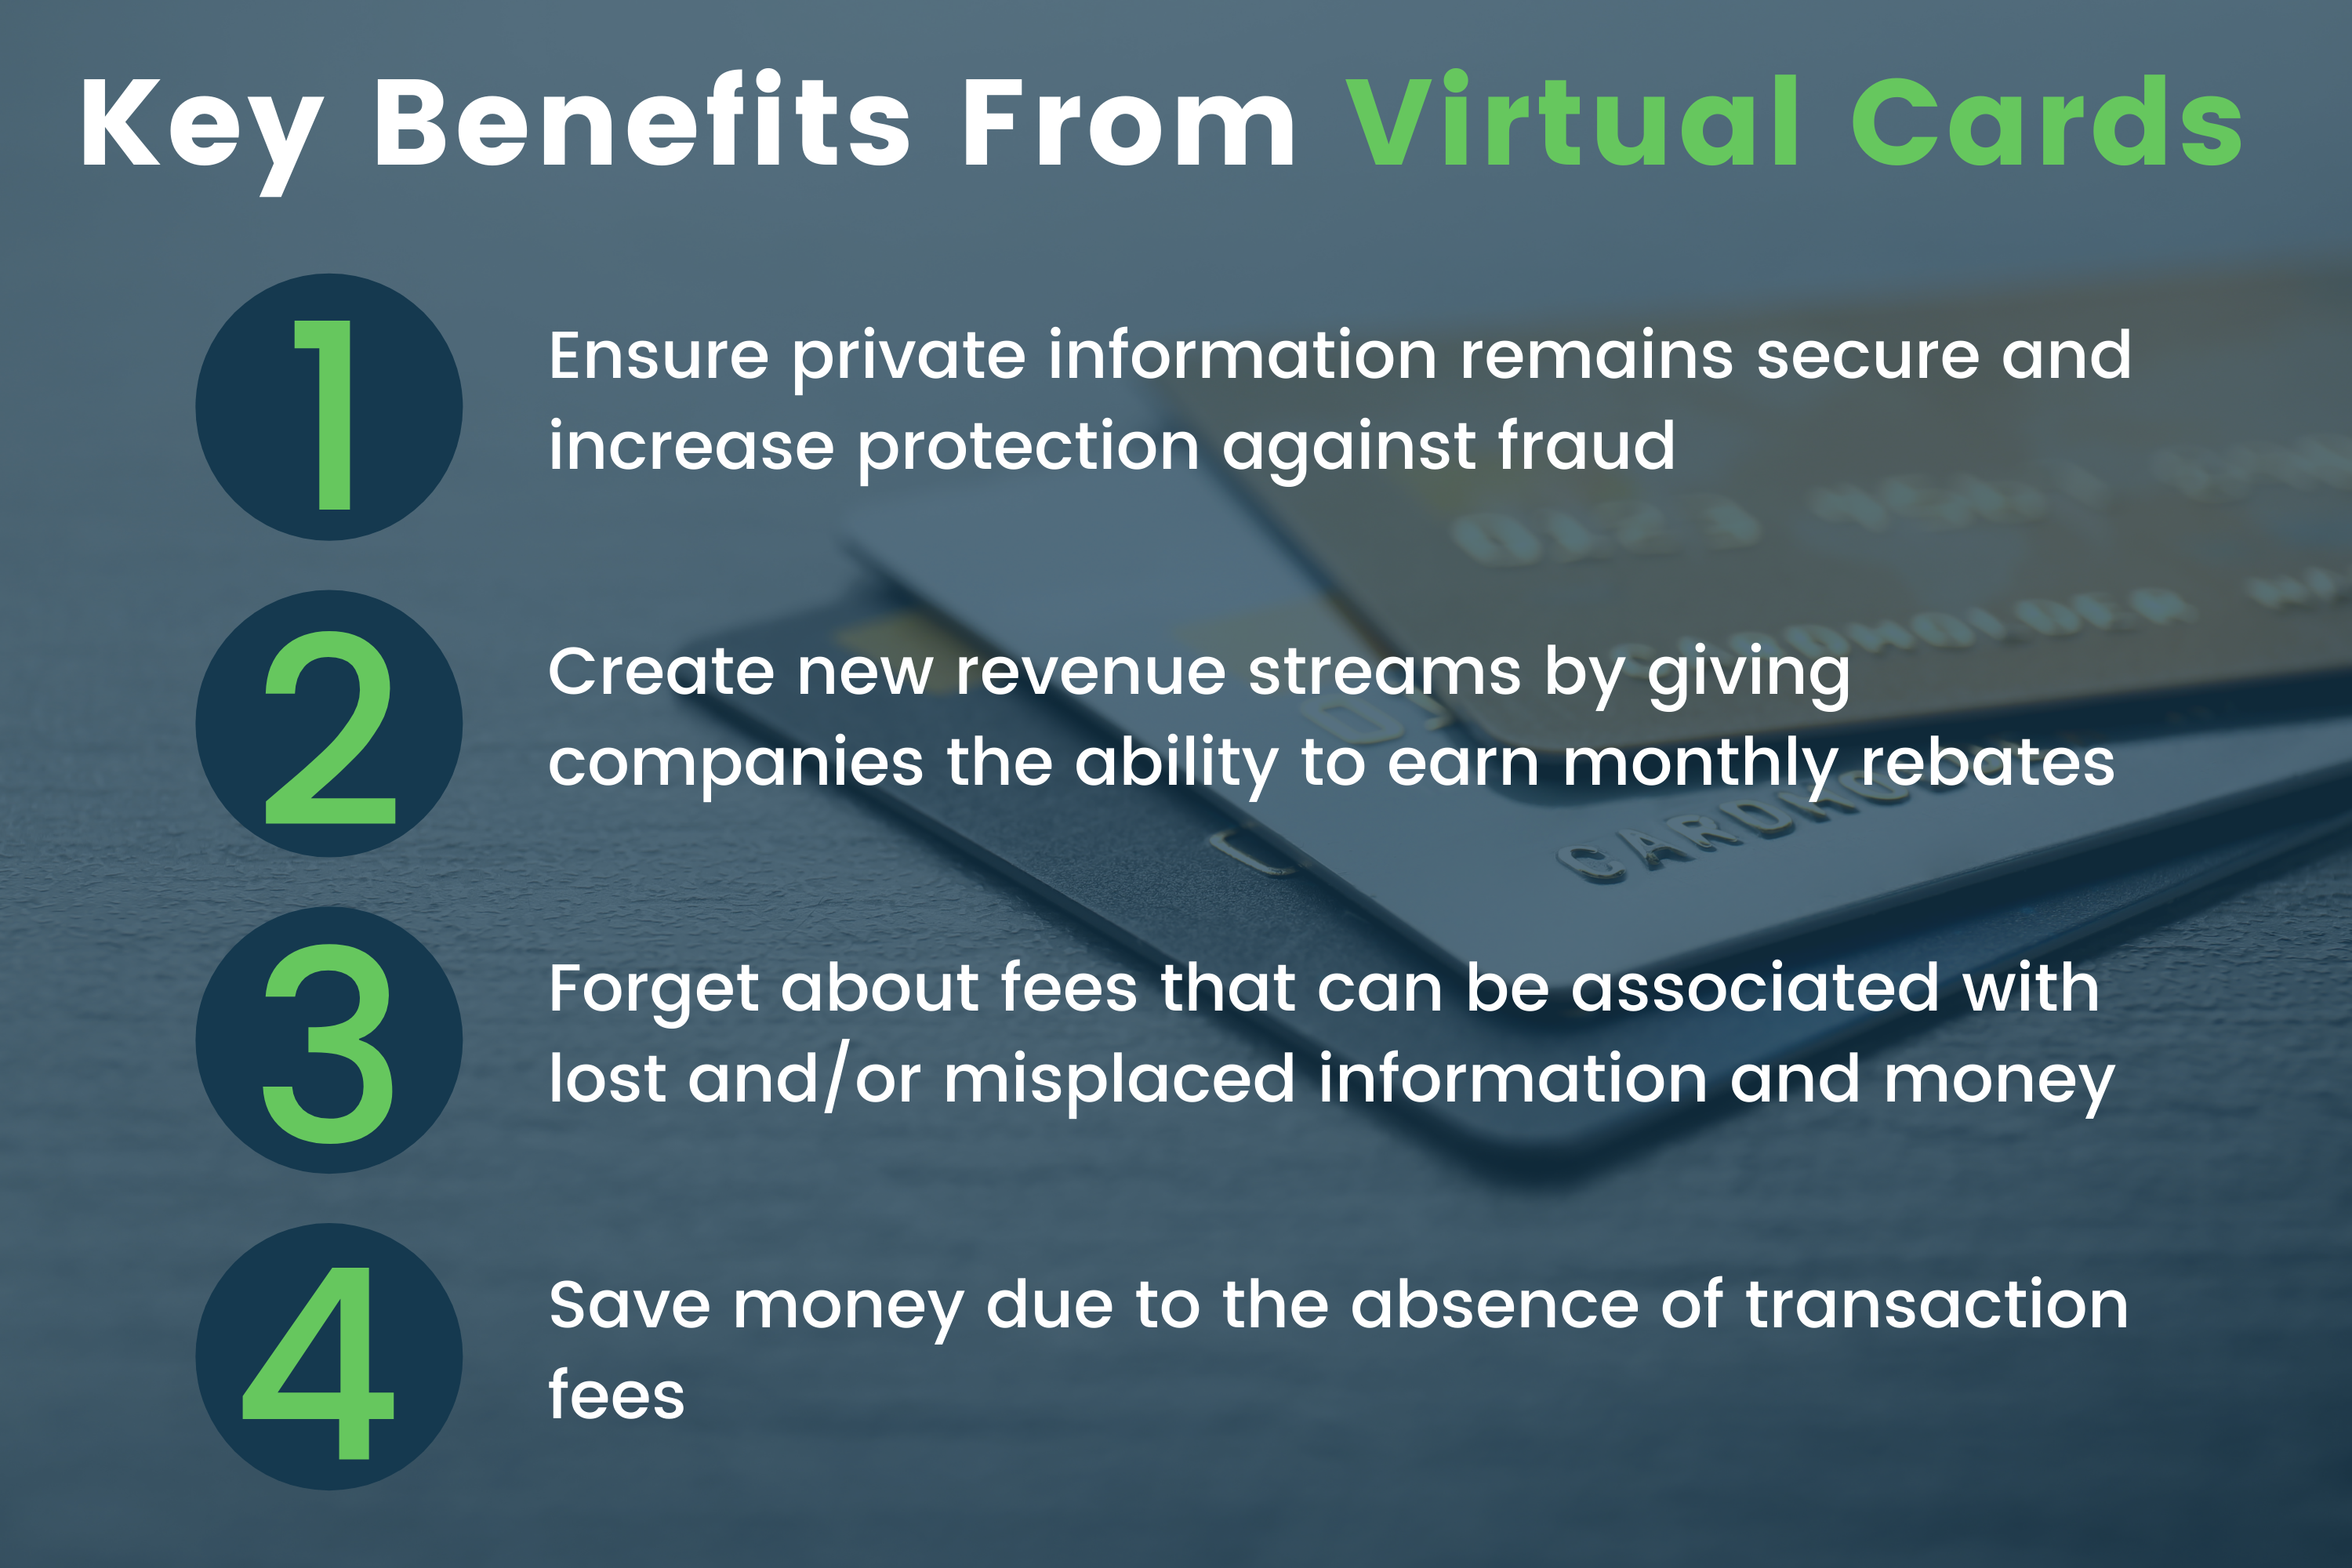 Key_benefits_from_virtual_cards_list_protect_private_information_create_new_revenue_forget_about_fees_save_money_due_to_no_transaction_fees